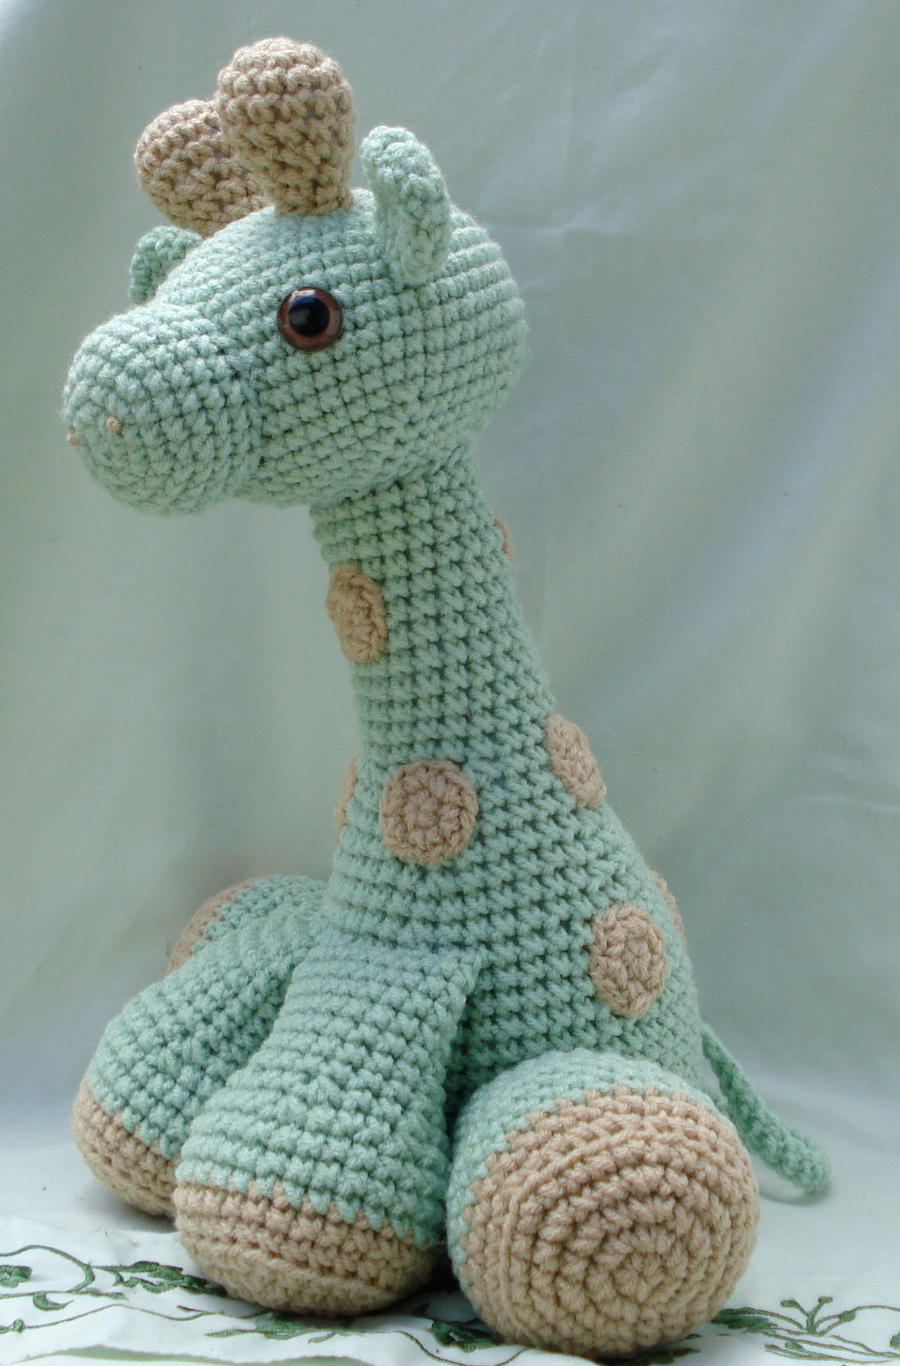 Amigurumi Pattern Maker : large amigurumi giraffe 2 by TheArtisansNook on DeviantArt